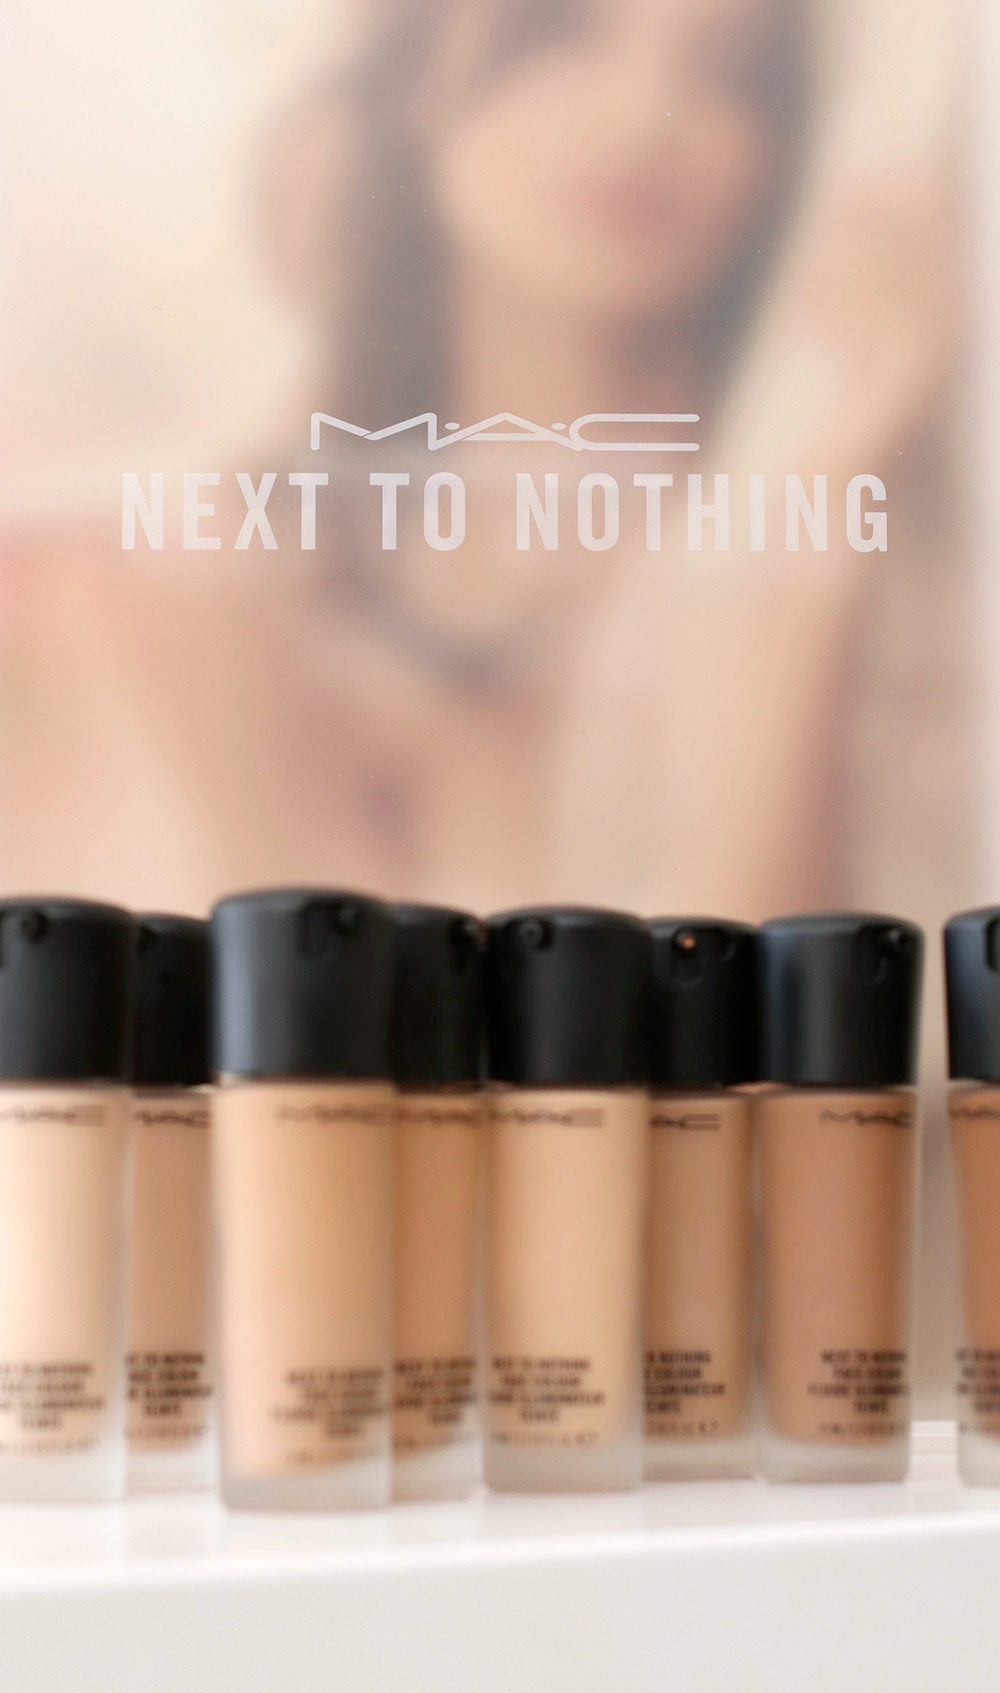 Mac Next To Nothing Collection Face Colours Pressed